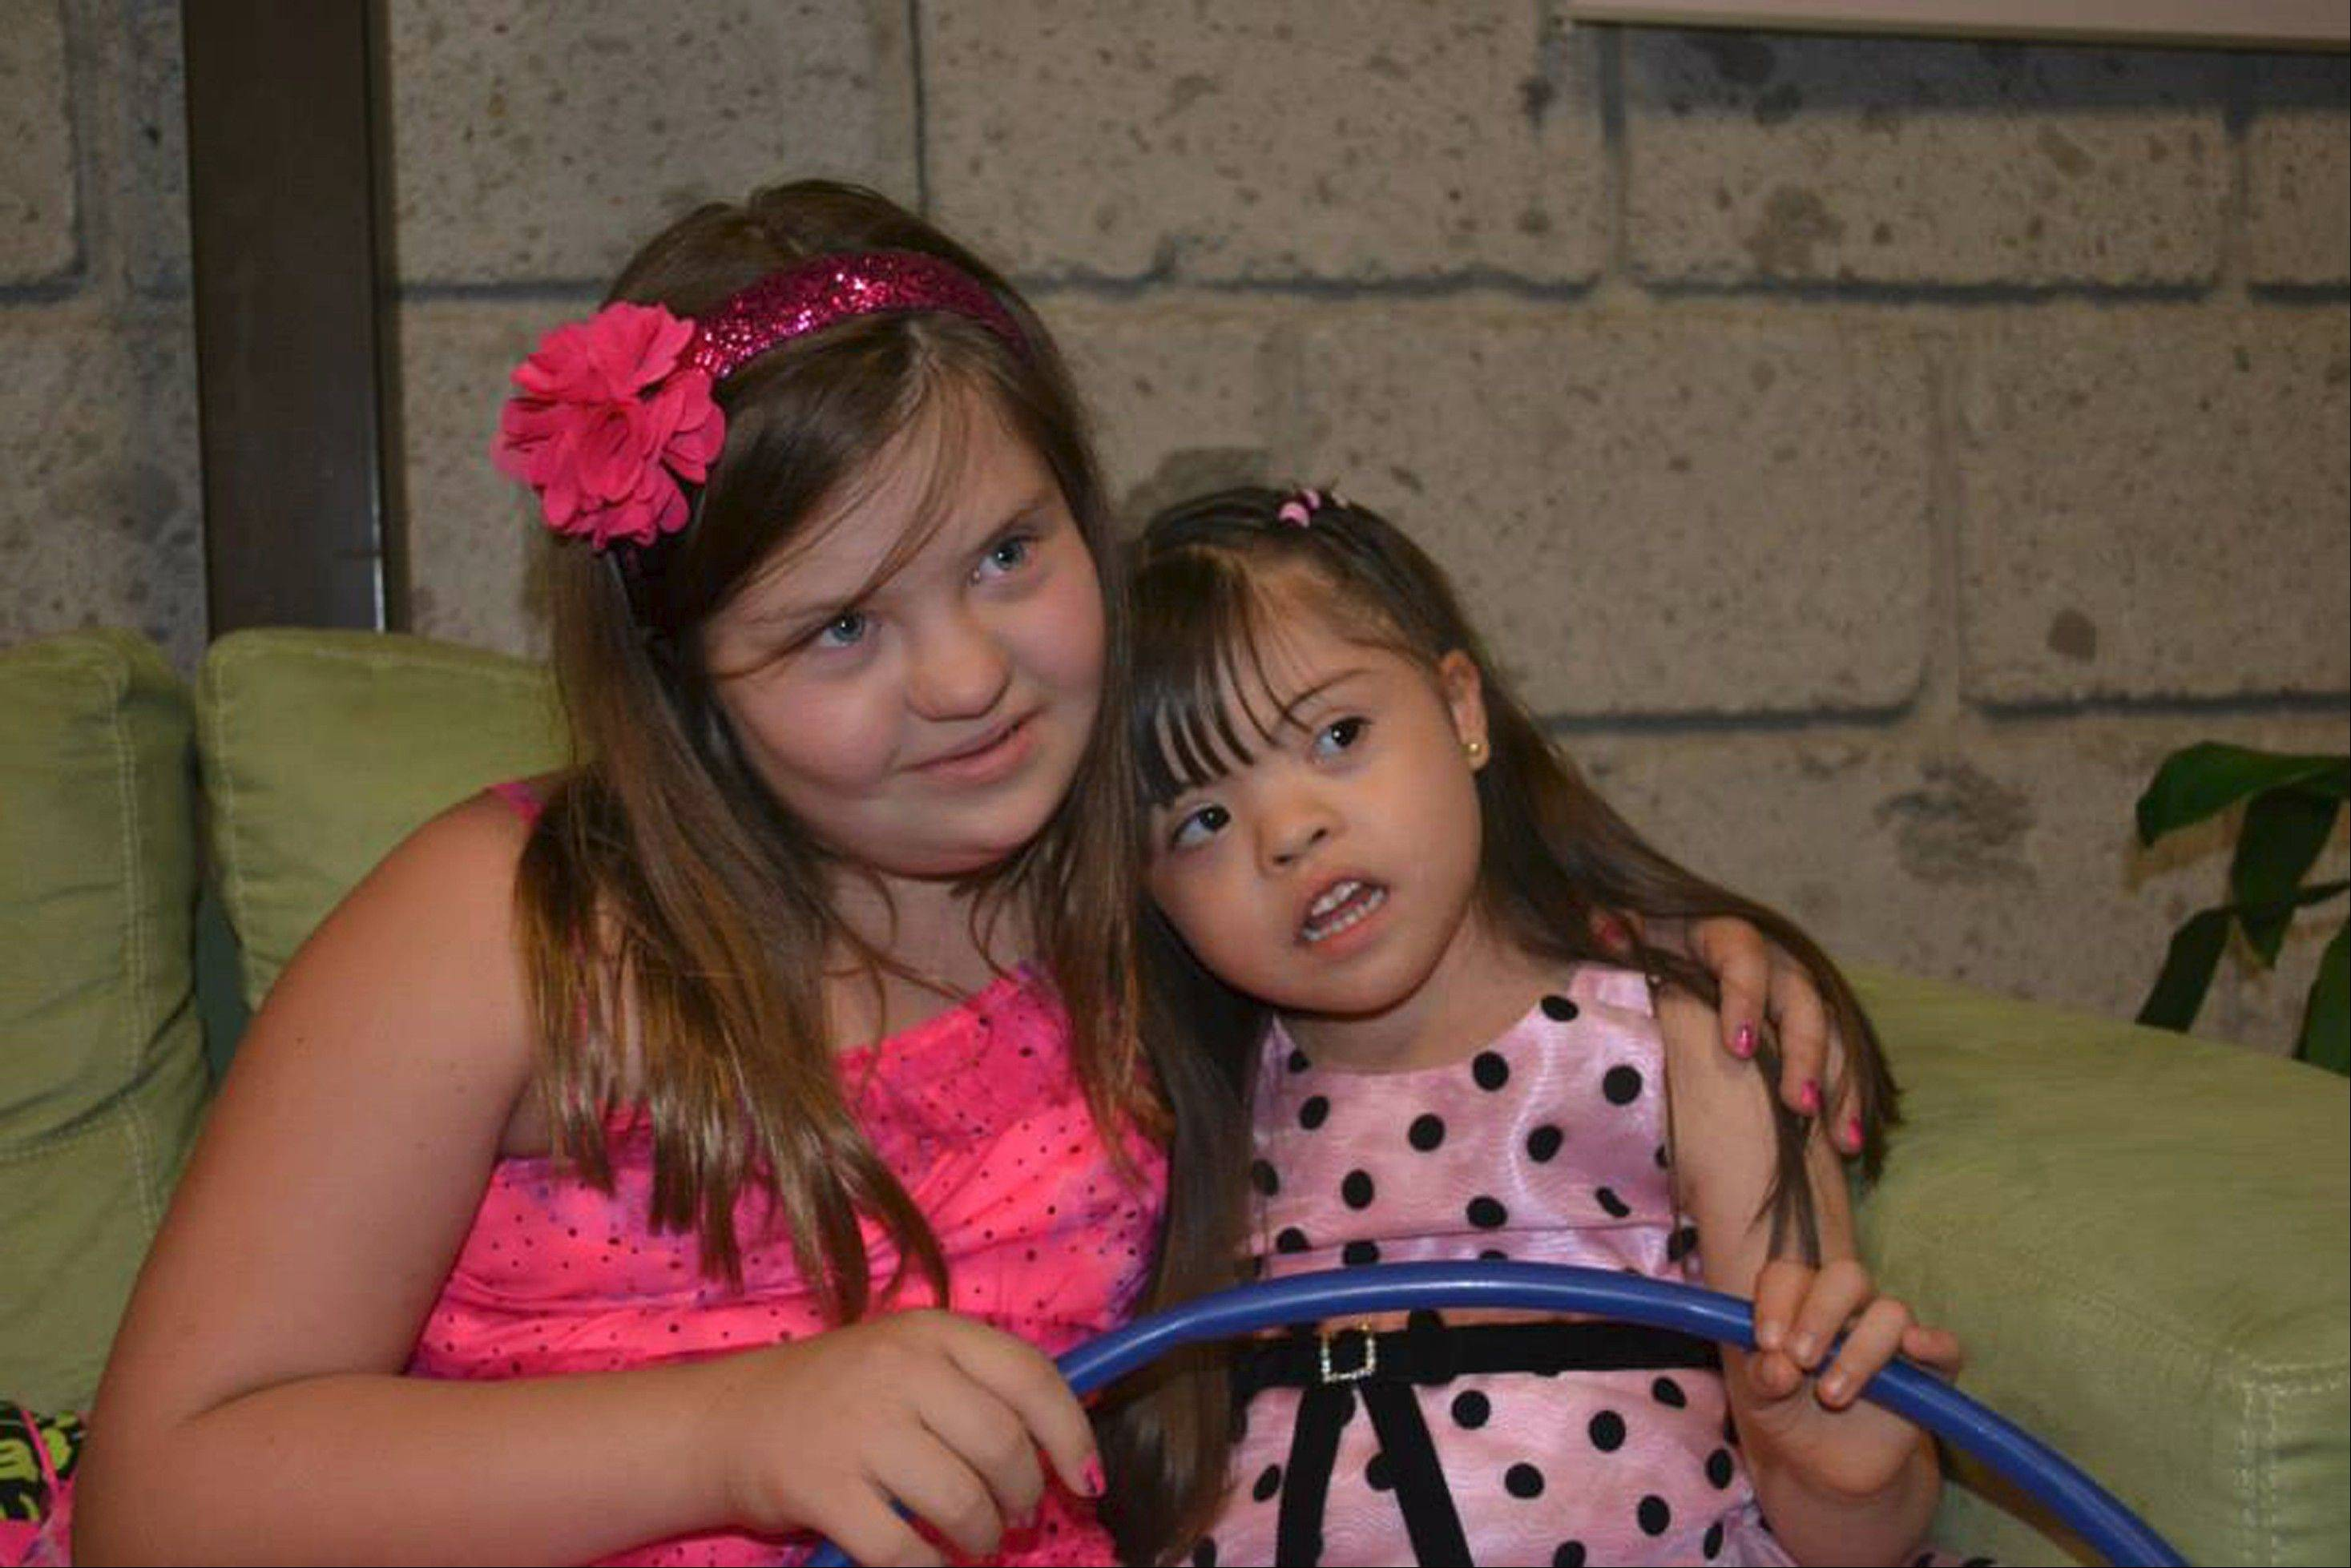 Gigi Gianni, 10, left, easily made friends when she visited the new Gigi's Playhouse in Mexico last month.